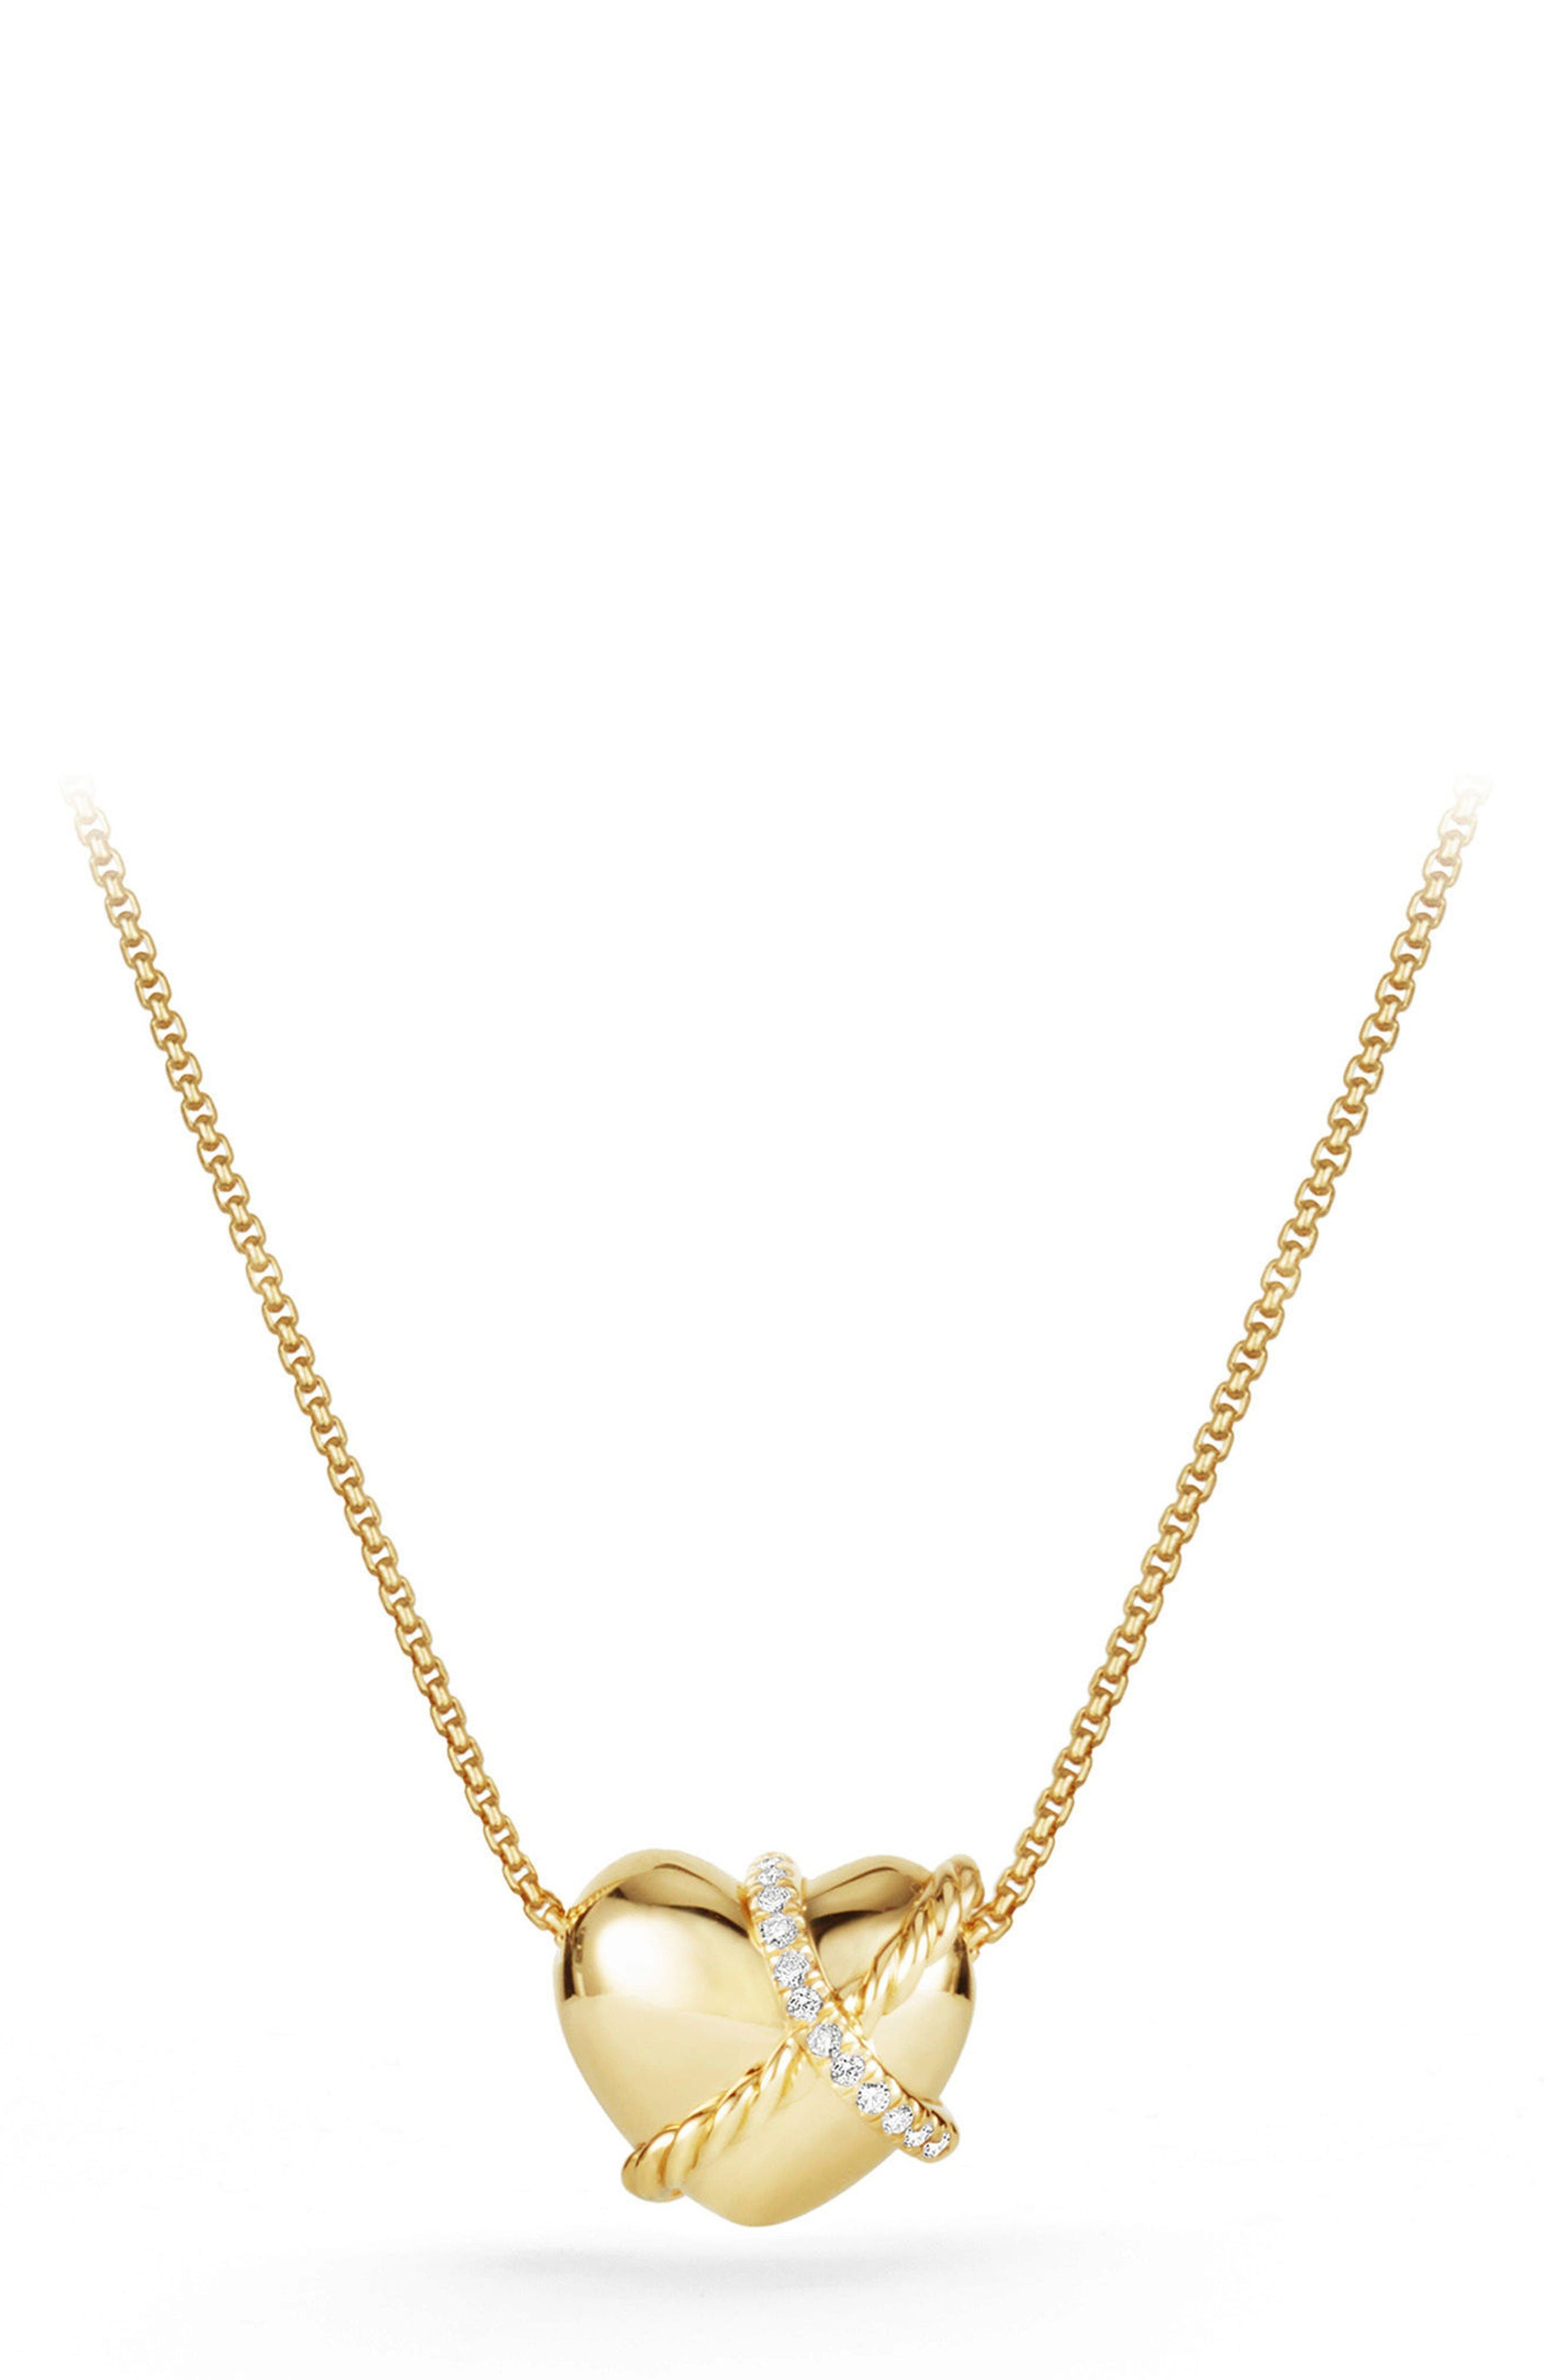 DAVID YURMAN Heart Pendant Necklace in 18K Gold with Diamonds